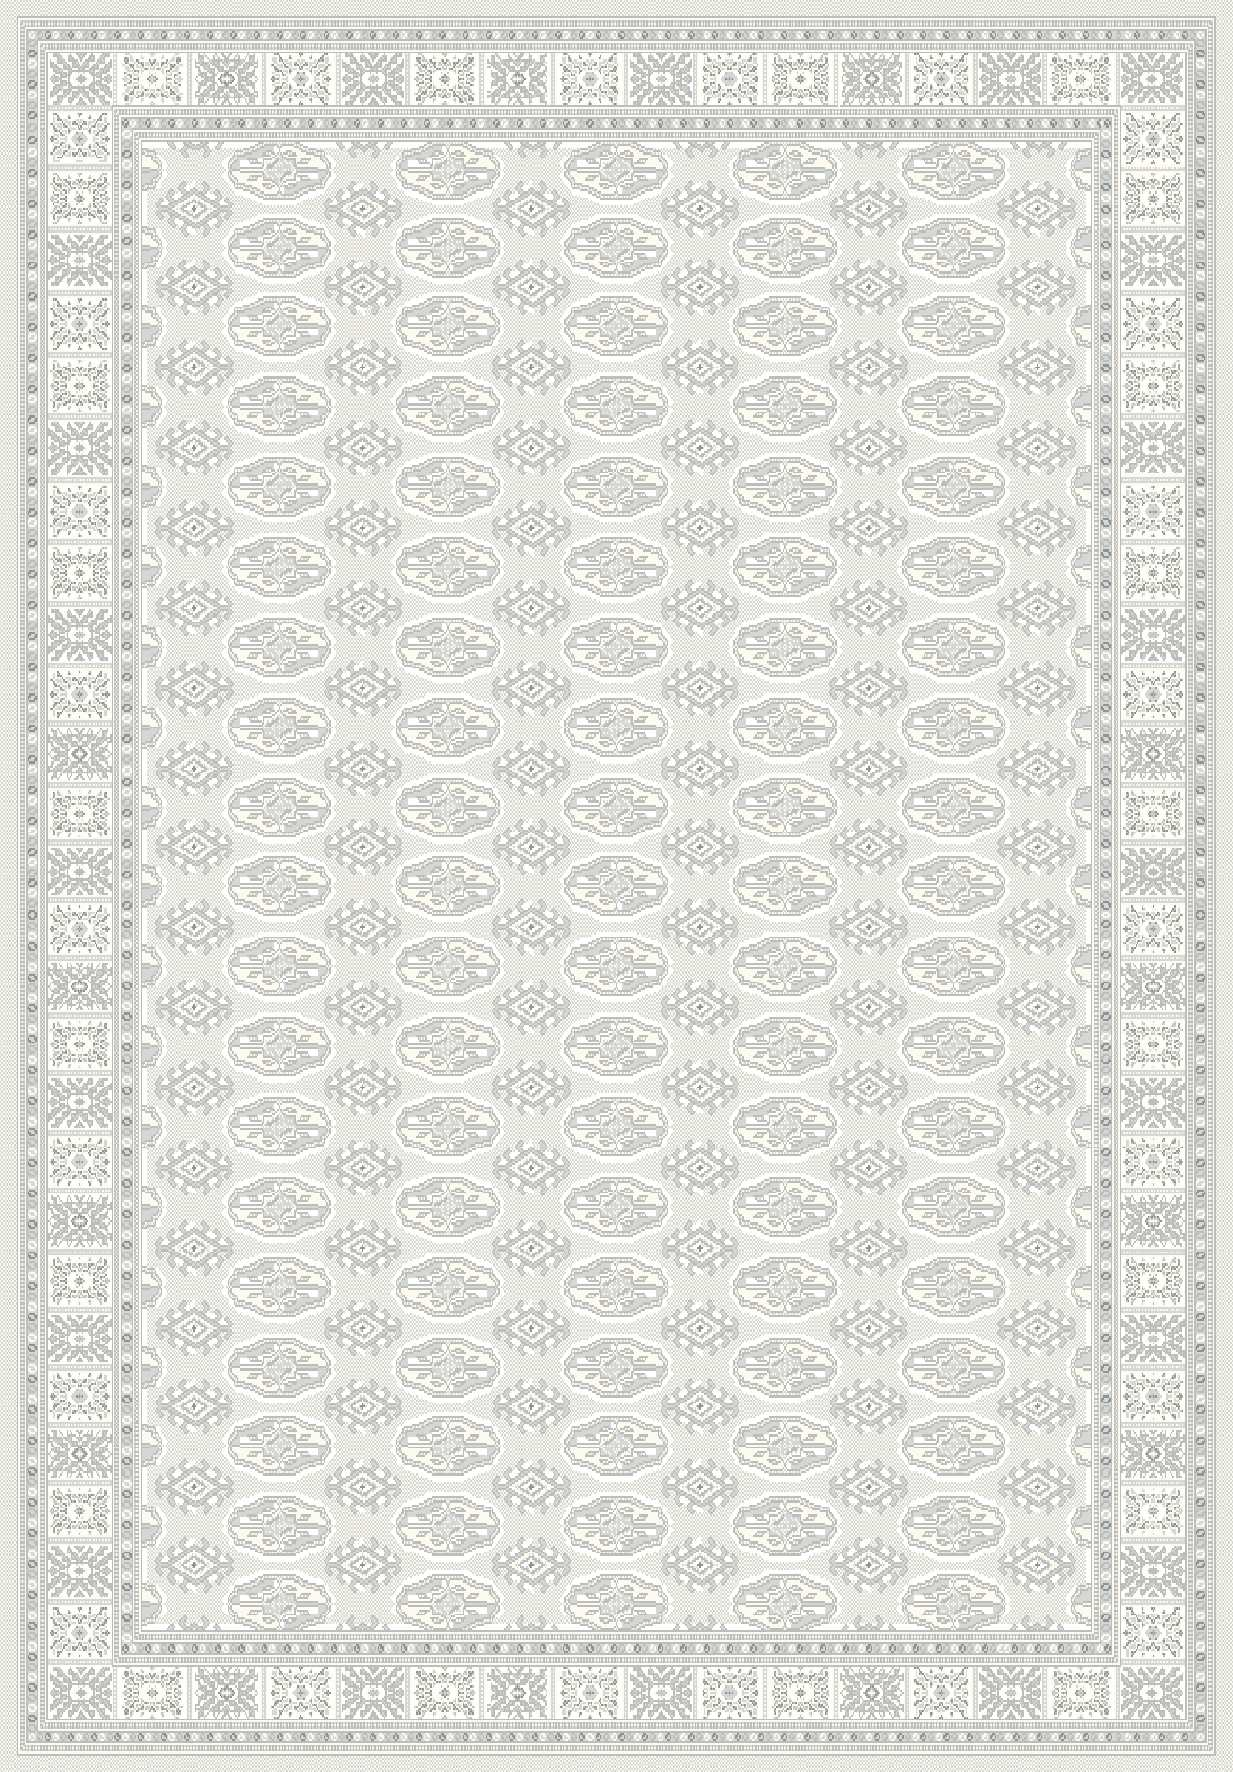 Dynamic Rugs Imperial Classic Beige 12146 Area Rug